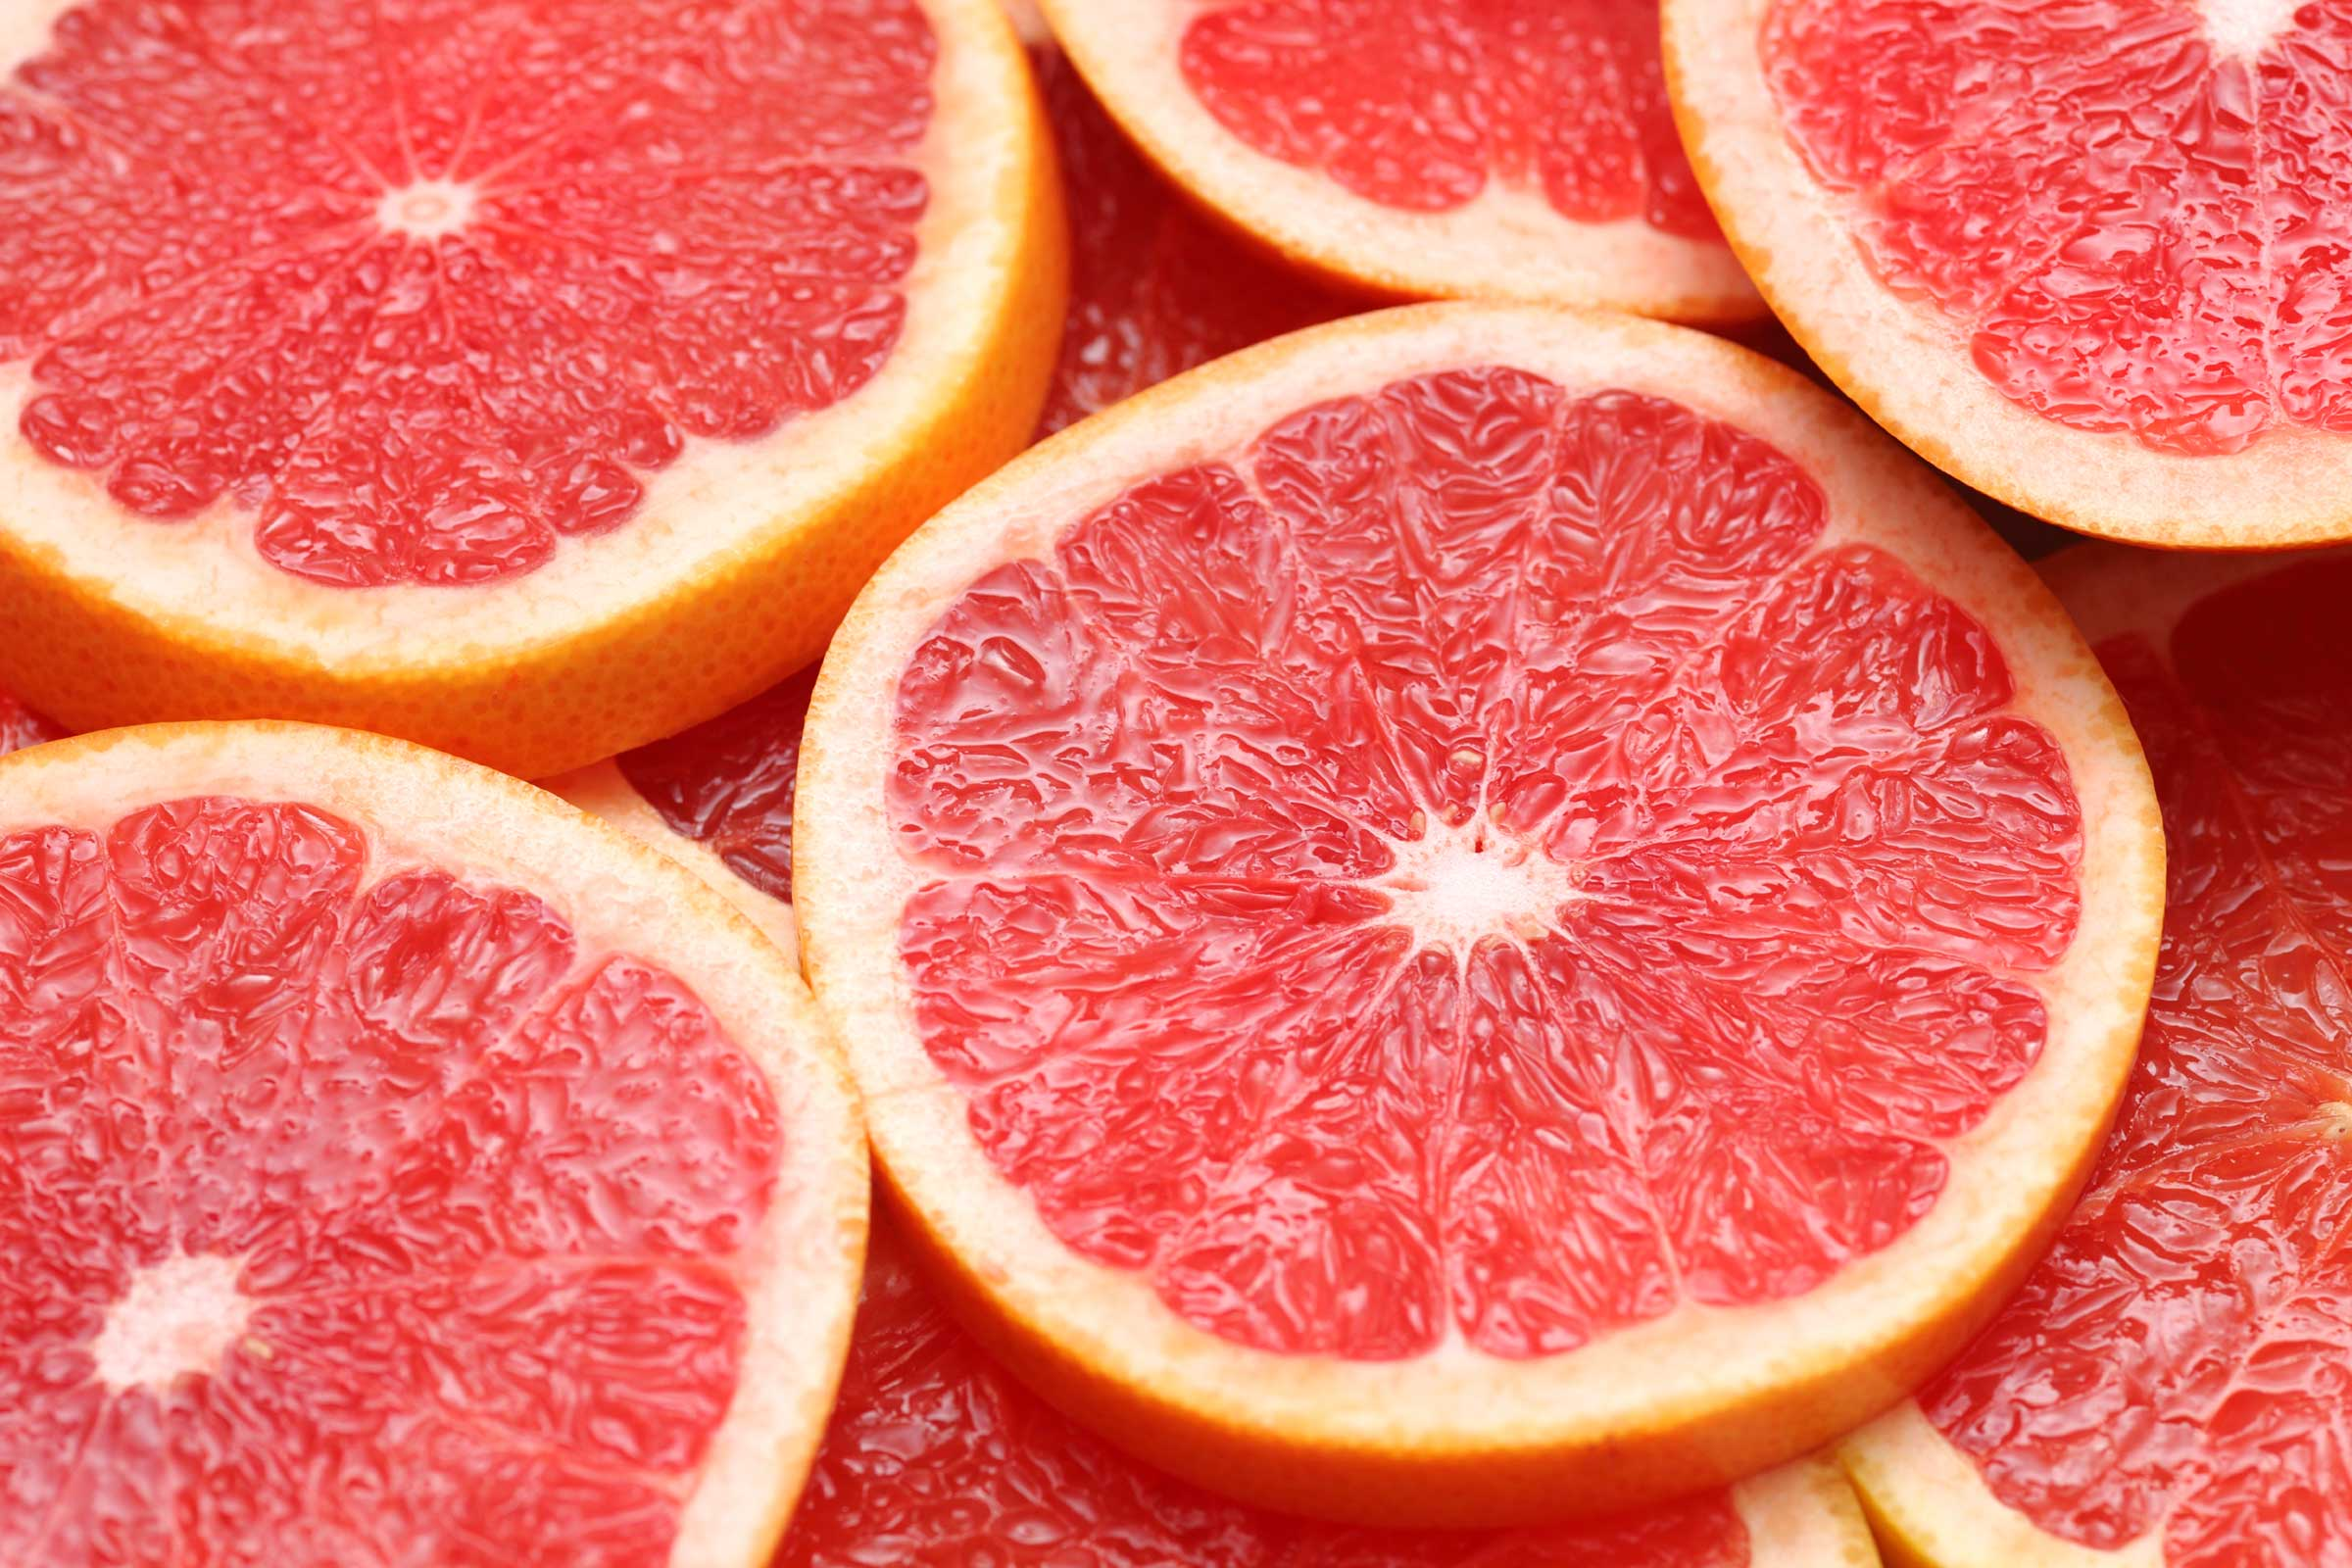 Helpful properties of pomelo